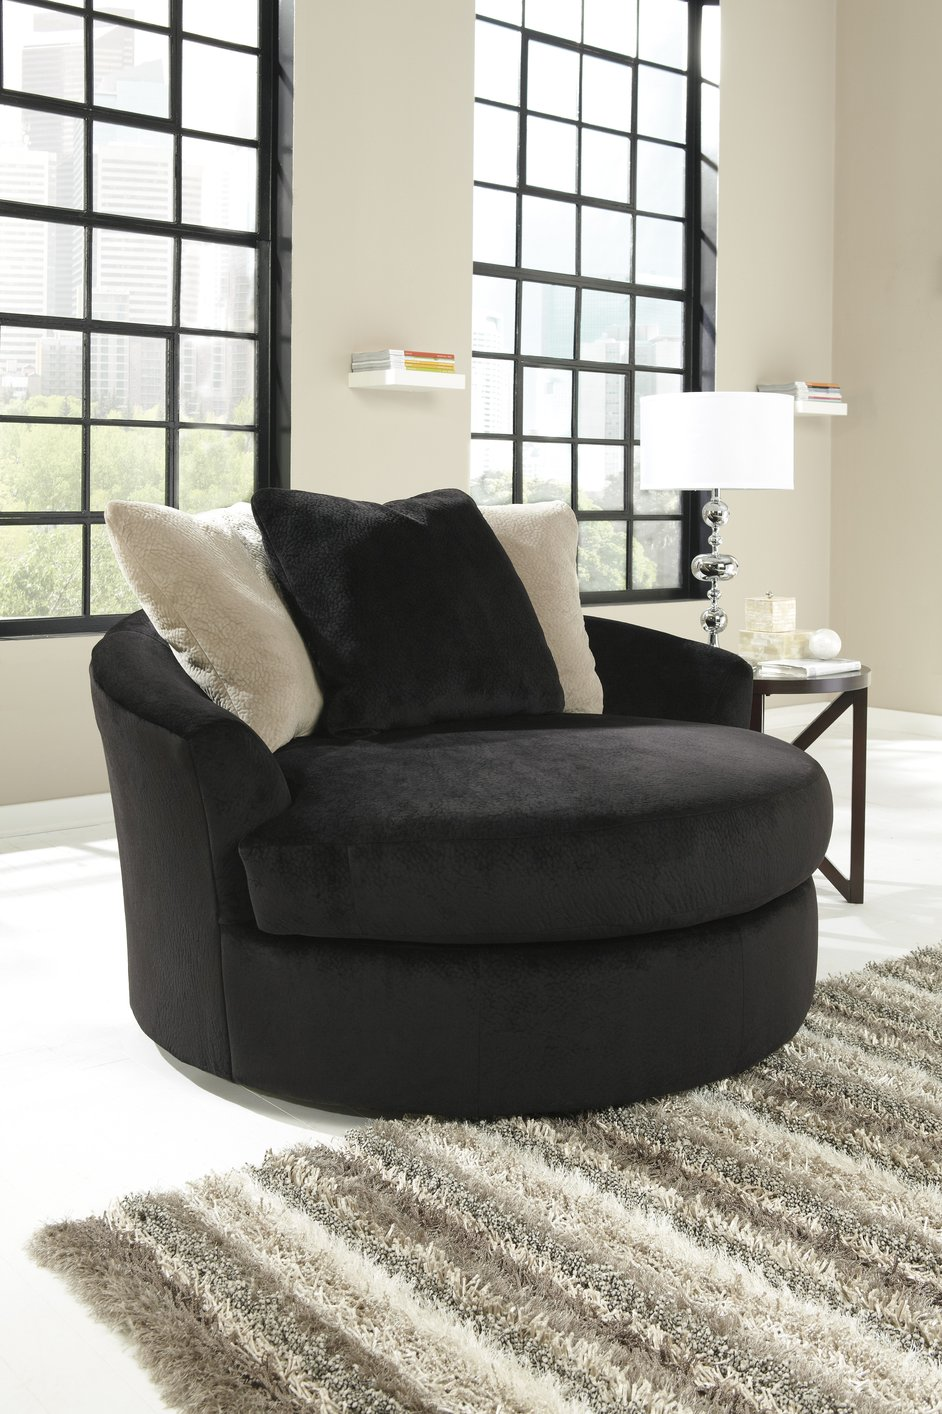 Sofa Fabric Quality Add Style And Beauty To Your Living Area With A Black